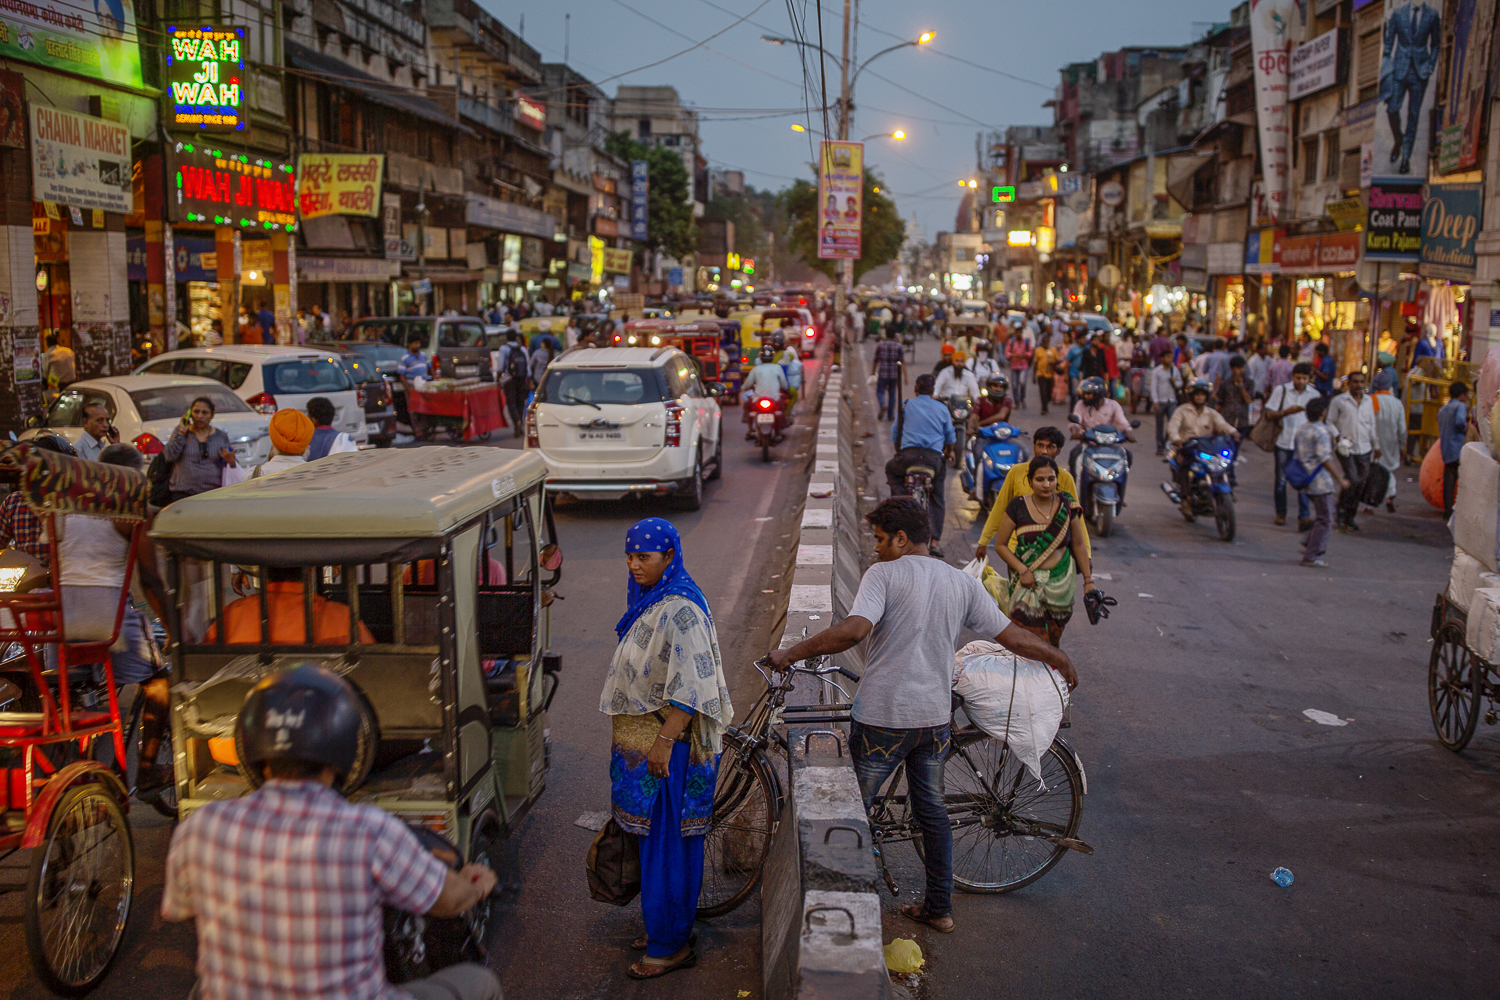 Bustling street, New Delhi/ India